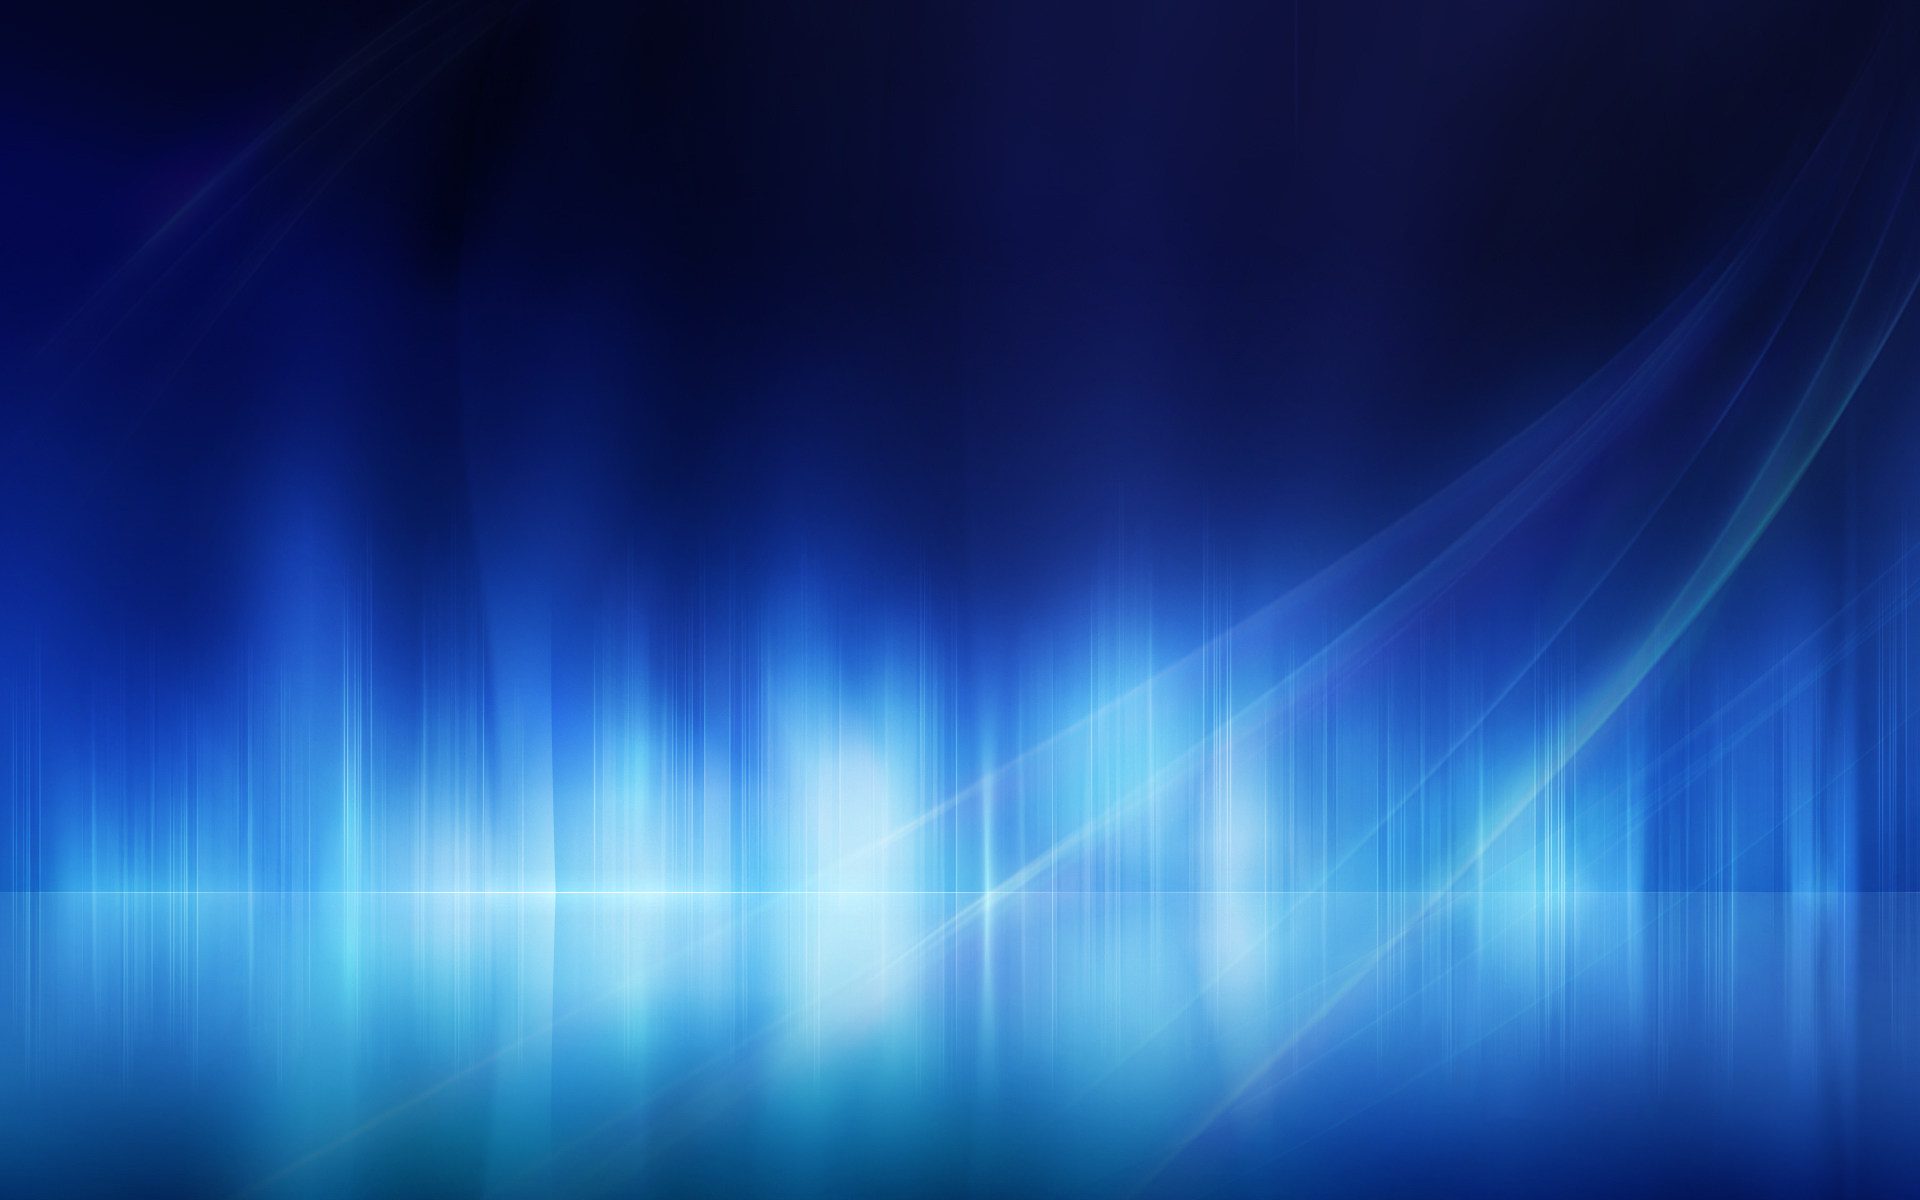 Ice Blue Wallpaper 1920x1200